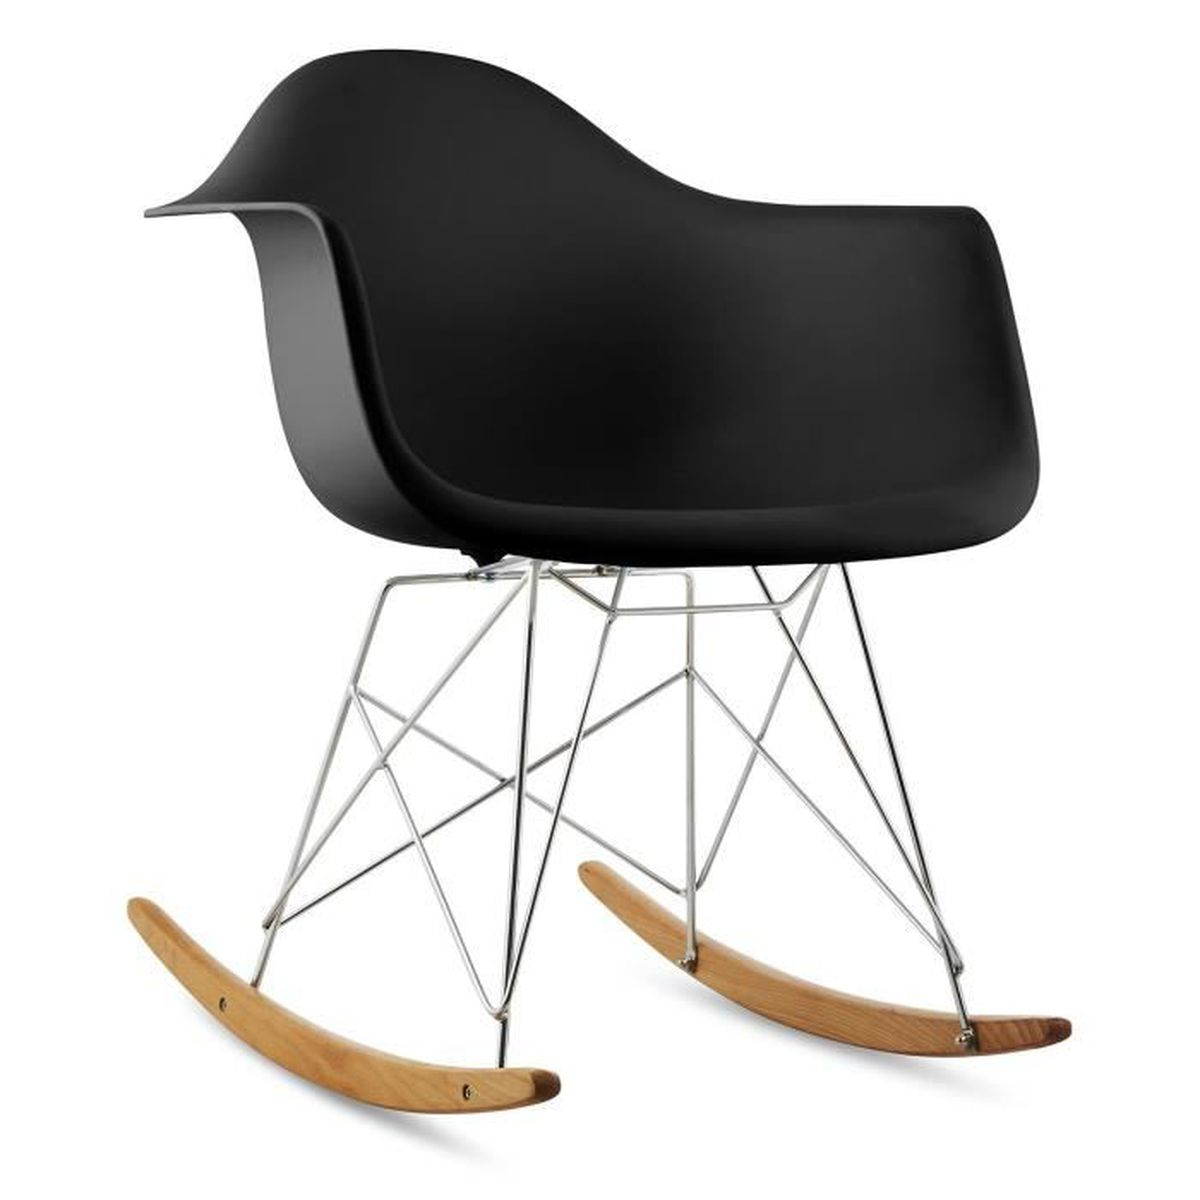 chaise bascule design cool le fauteuil eames bascule le rar me faisait de luil depuis longtemps. Black Bedroom Furniture Sets. Home Design Ideas